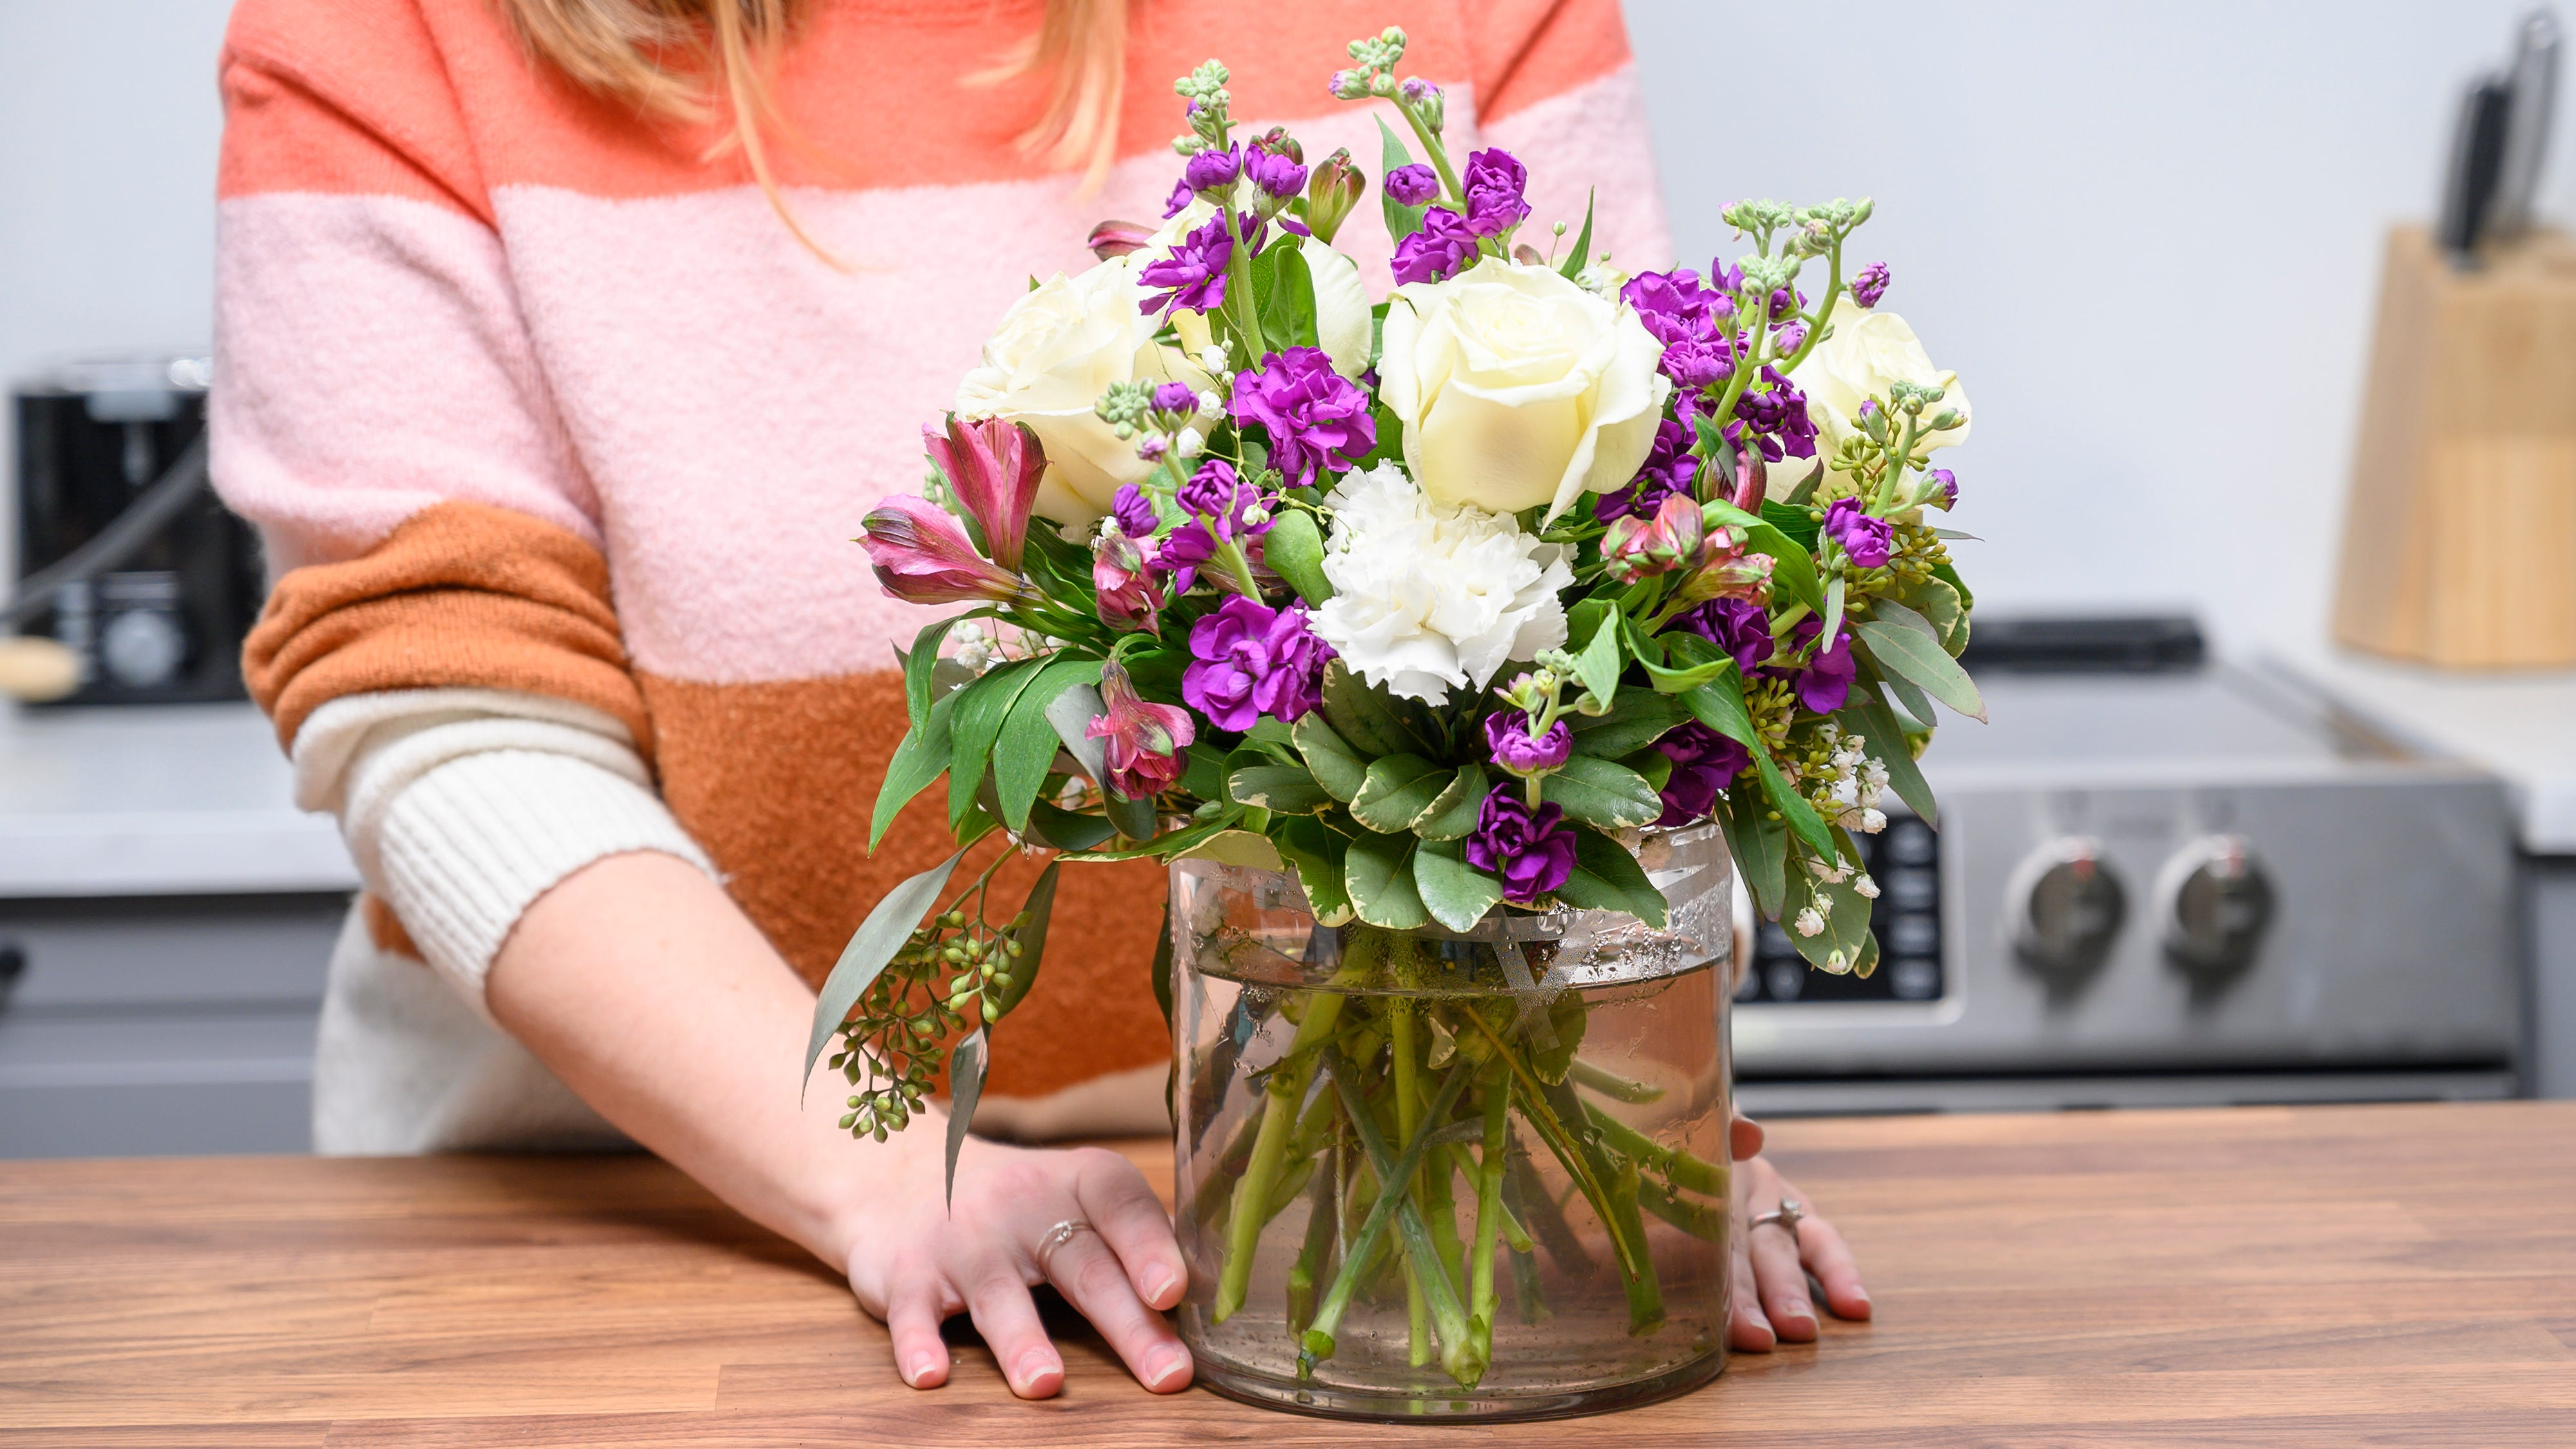 This is the easiest way to order last-minute flowers for Valentine's Day